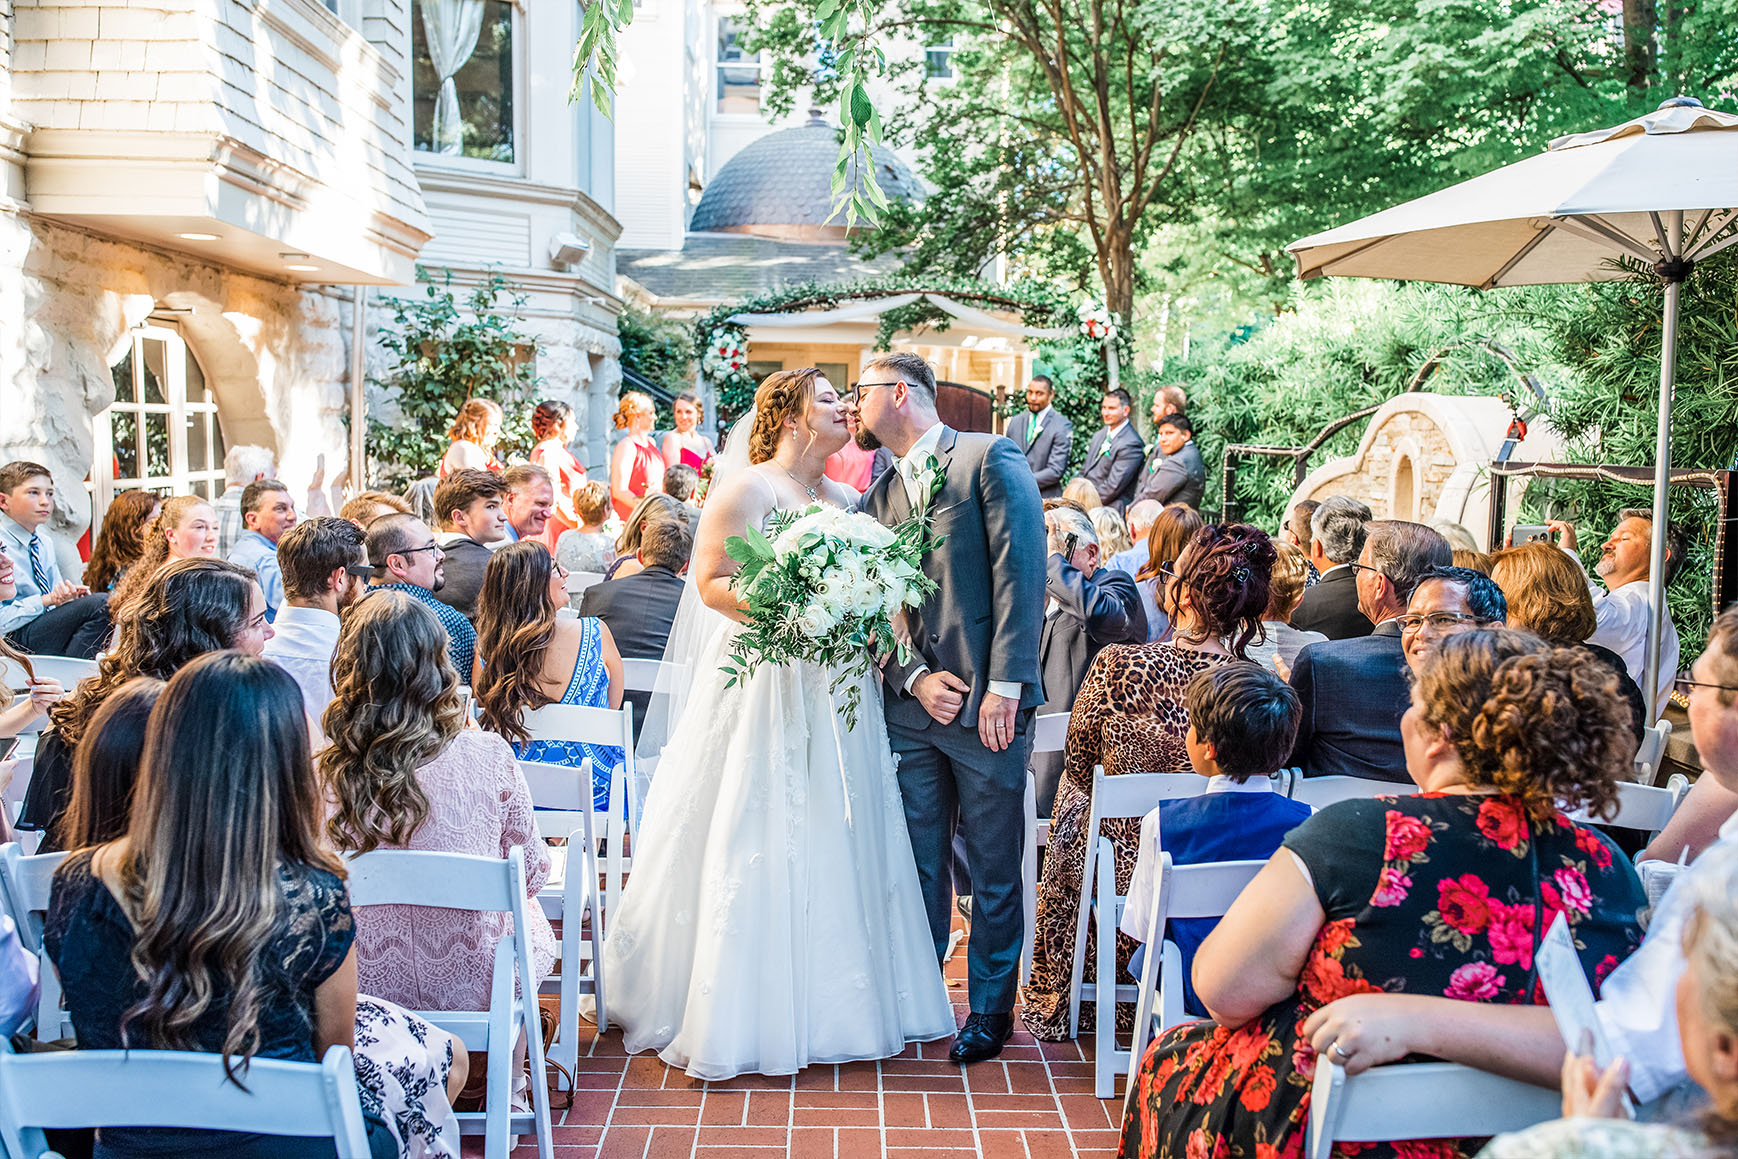 Wedding Ceremony - Sacramento, California - Sacramento County - Wedgewood Weddings